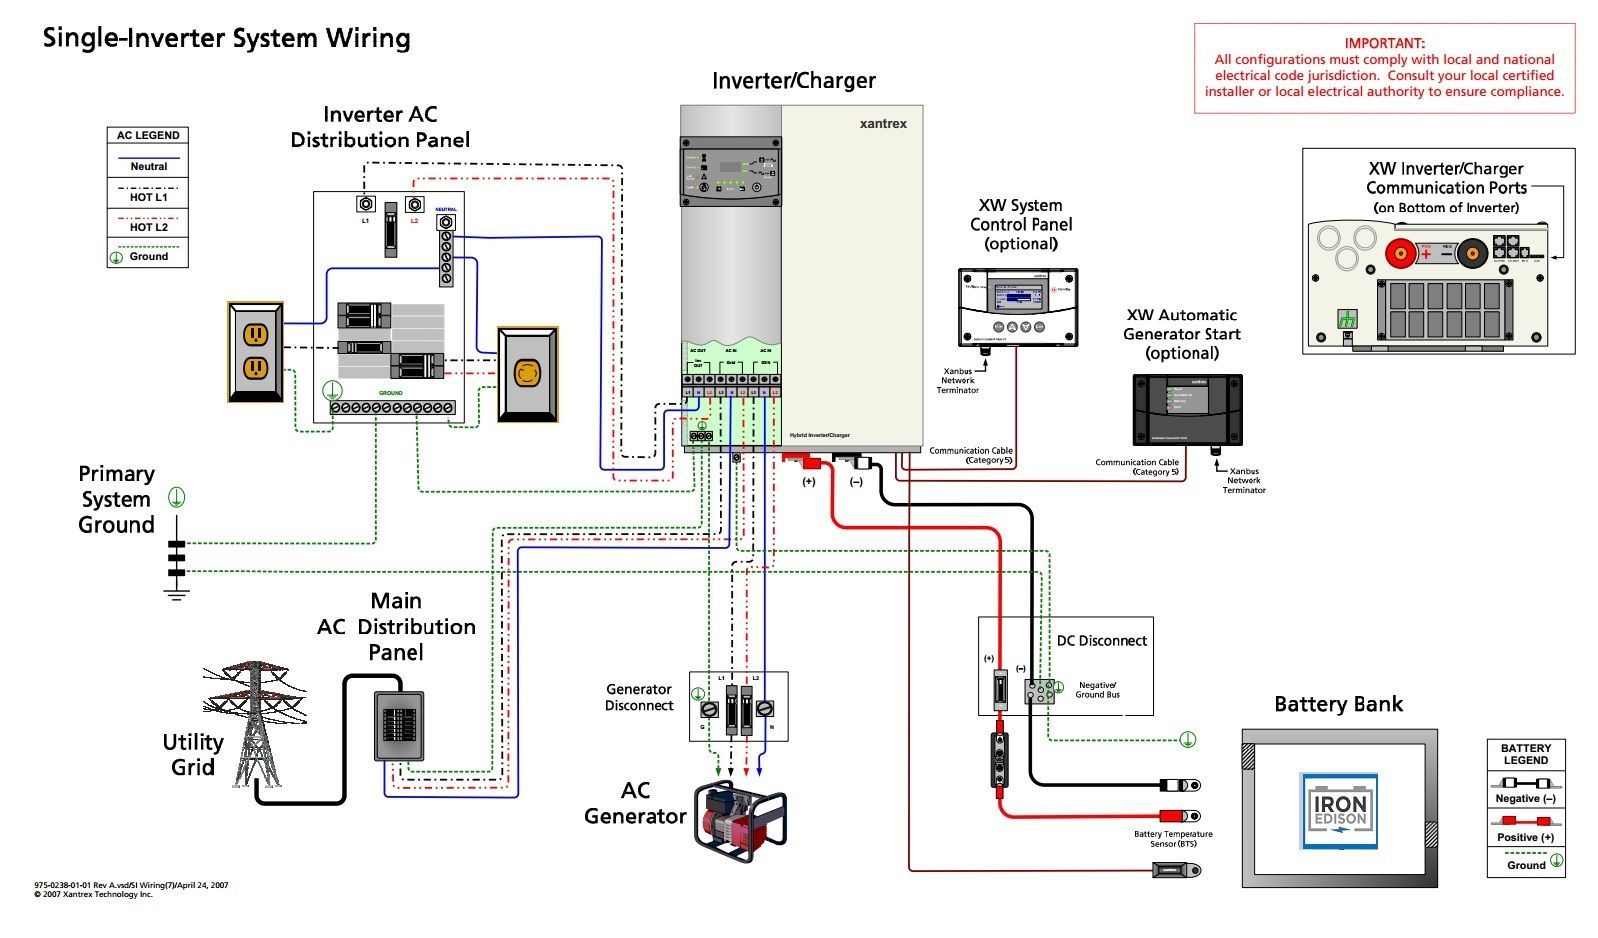 Complete system wiring diagramjpg 1598938 pixels off